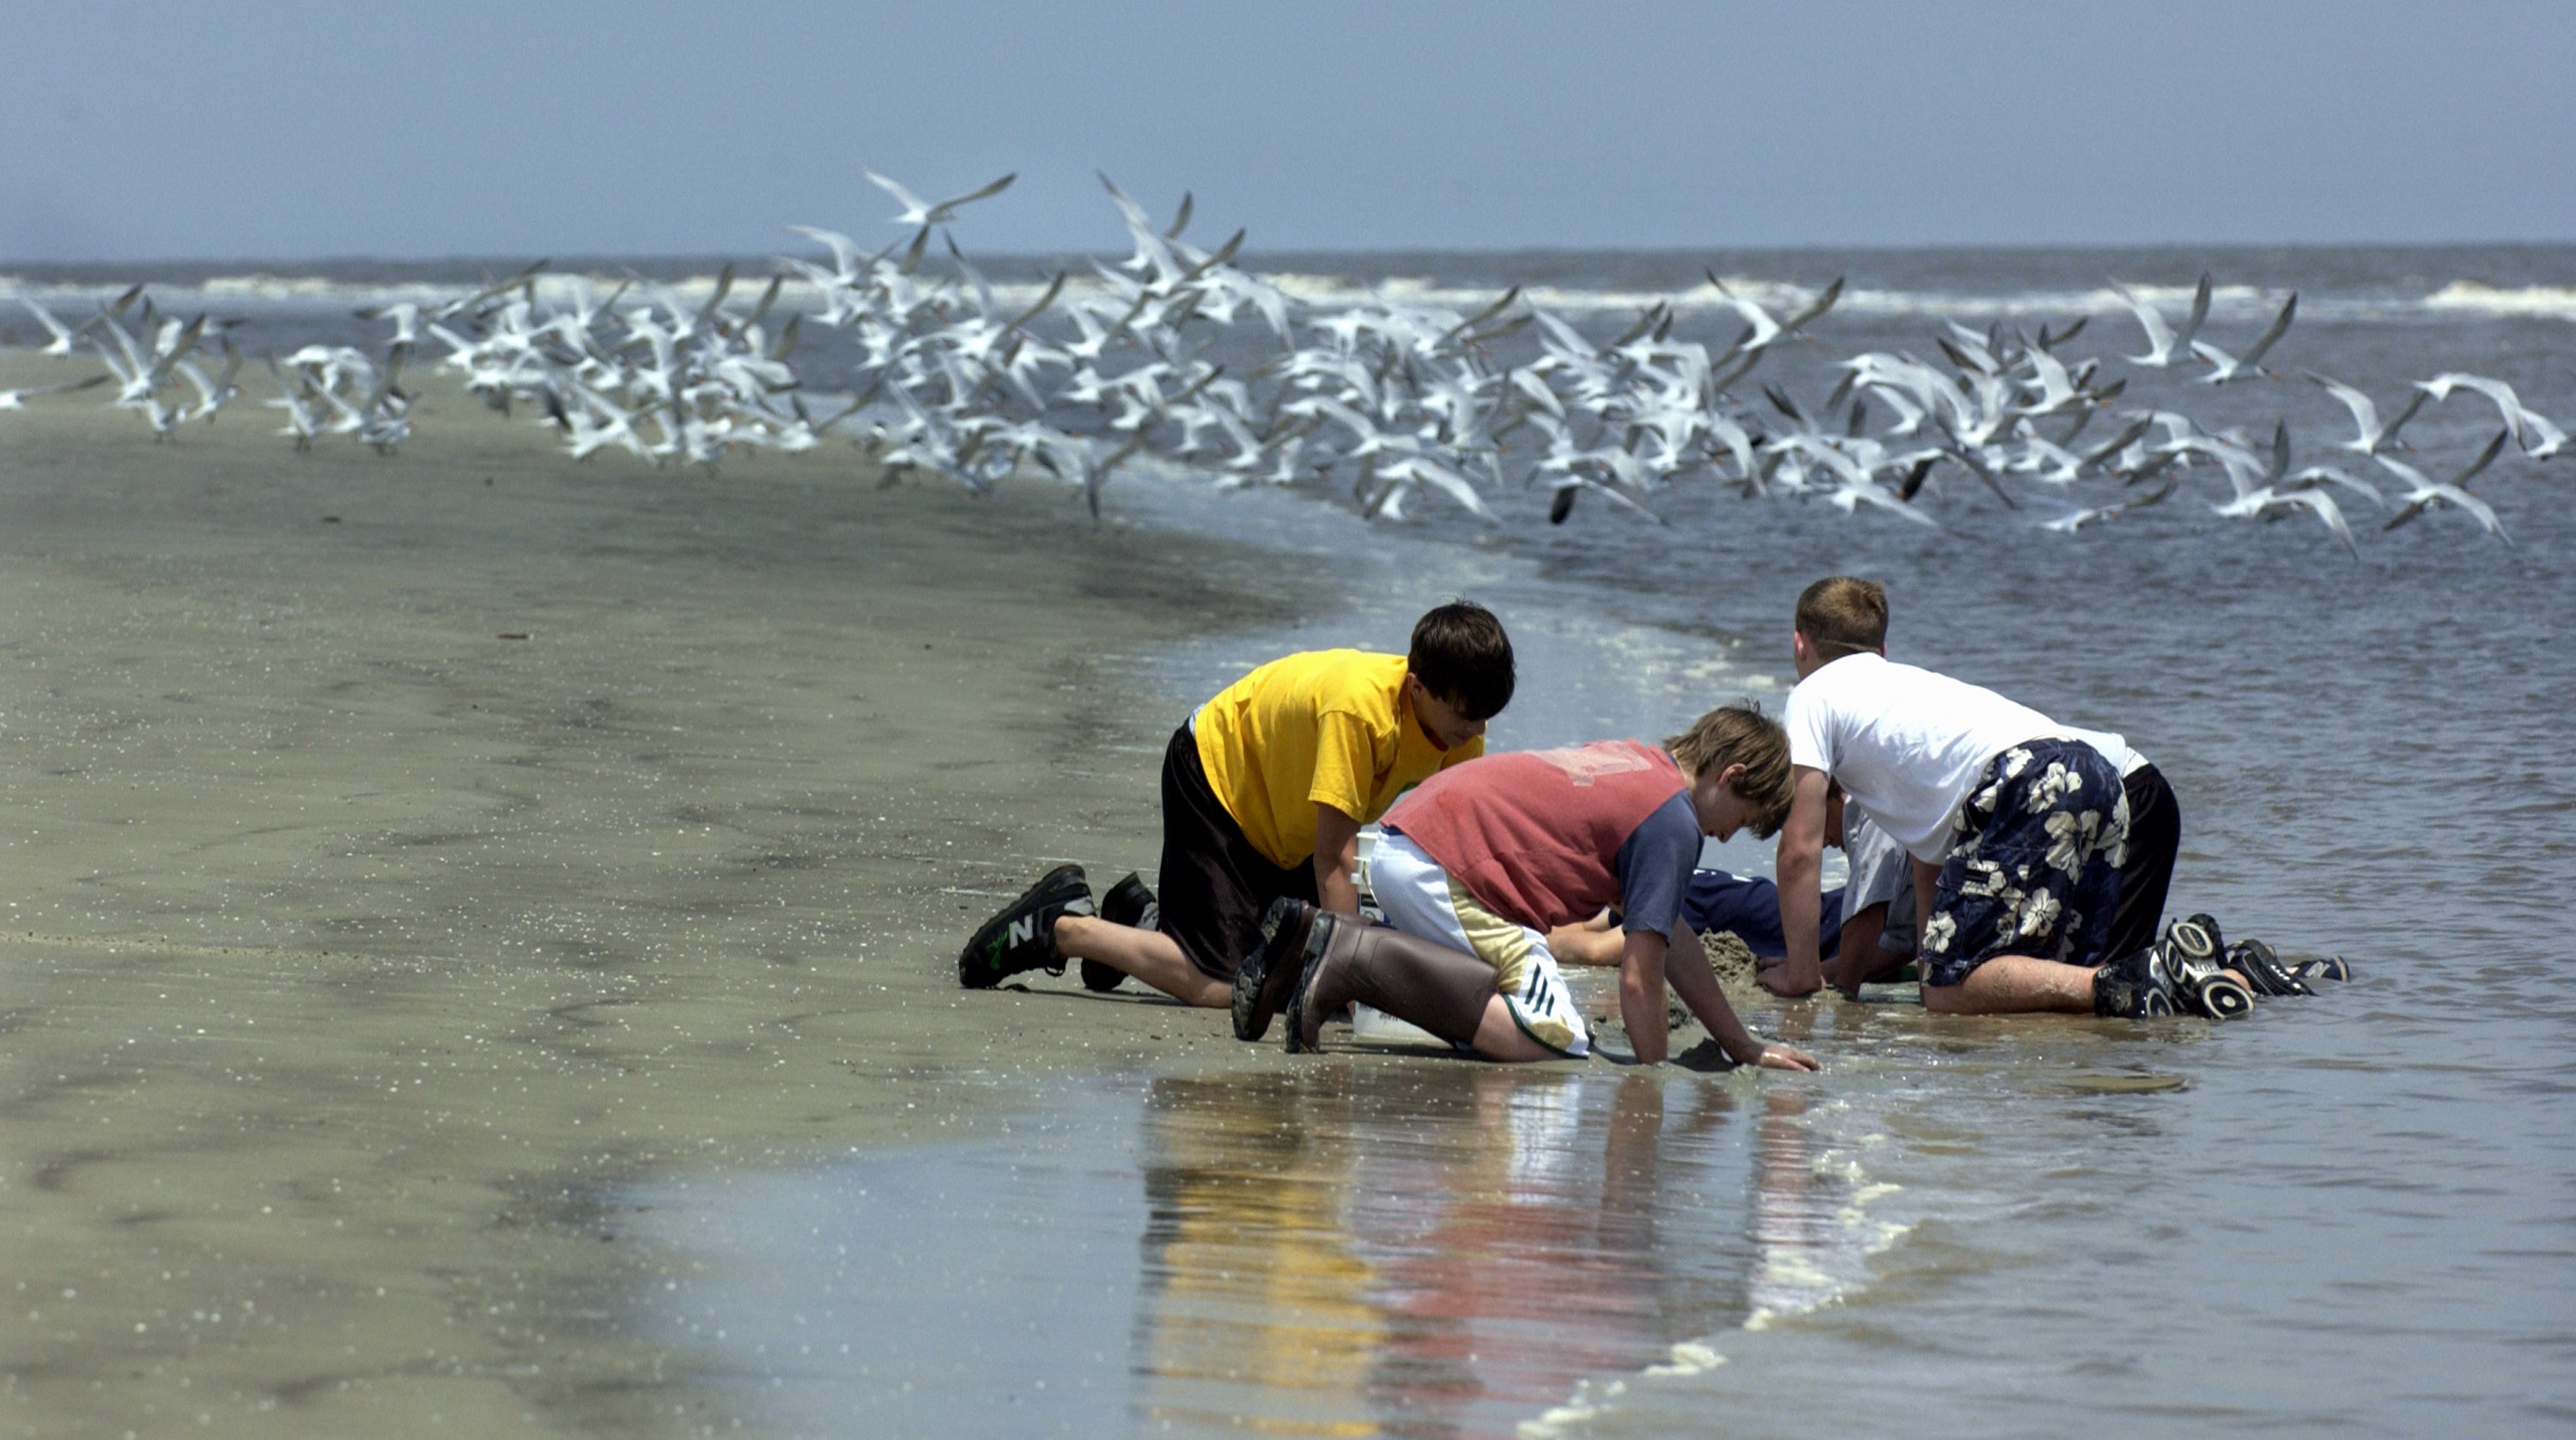 Students participate in an Environmental Education class on the beach at the Jekyll Island 4H Center at Jekyll Island, Ga. May 2, 2005.